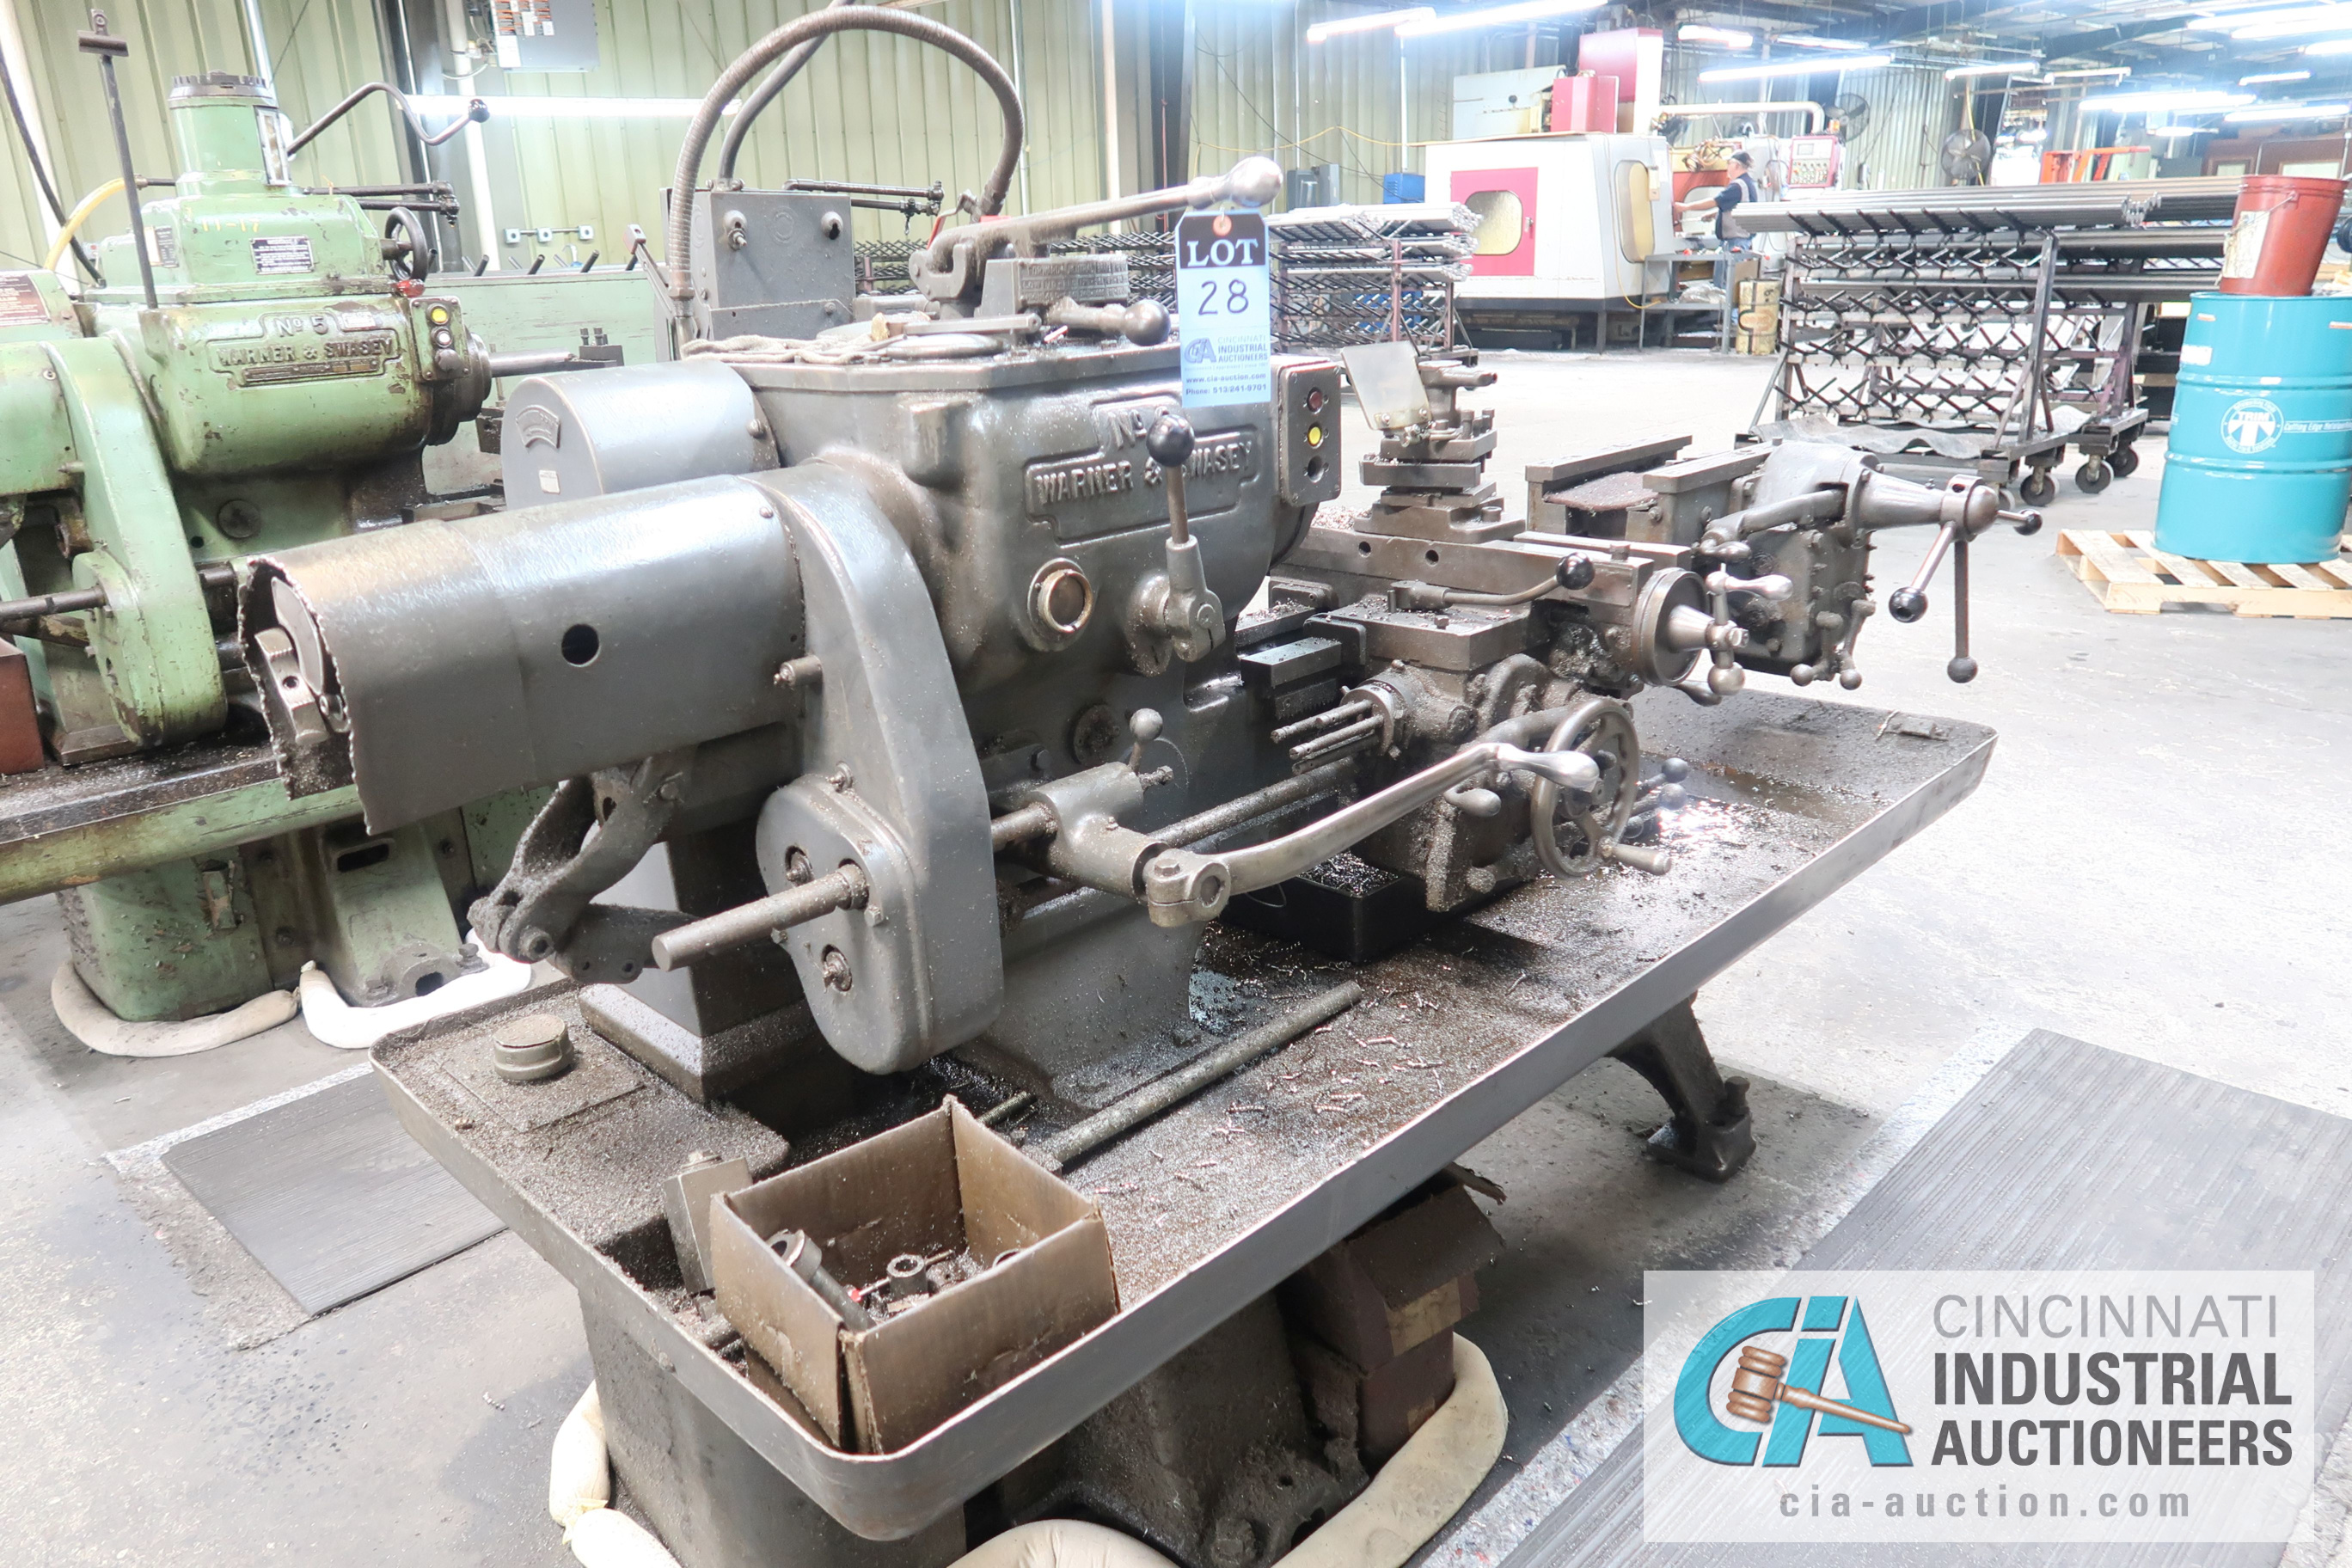 (Former lot 28) WARNER AND SWASEY MODEL 3 LATHE; S/N 663697